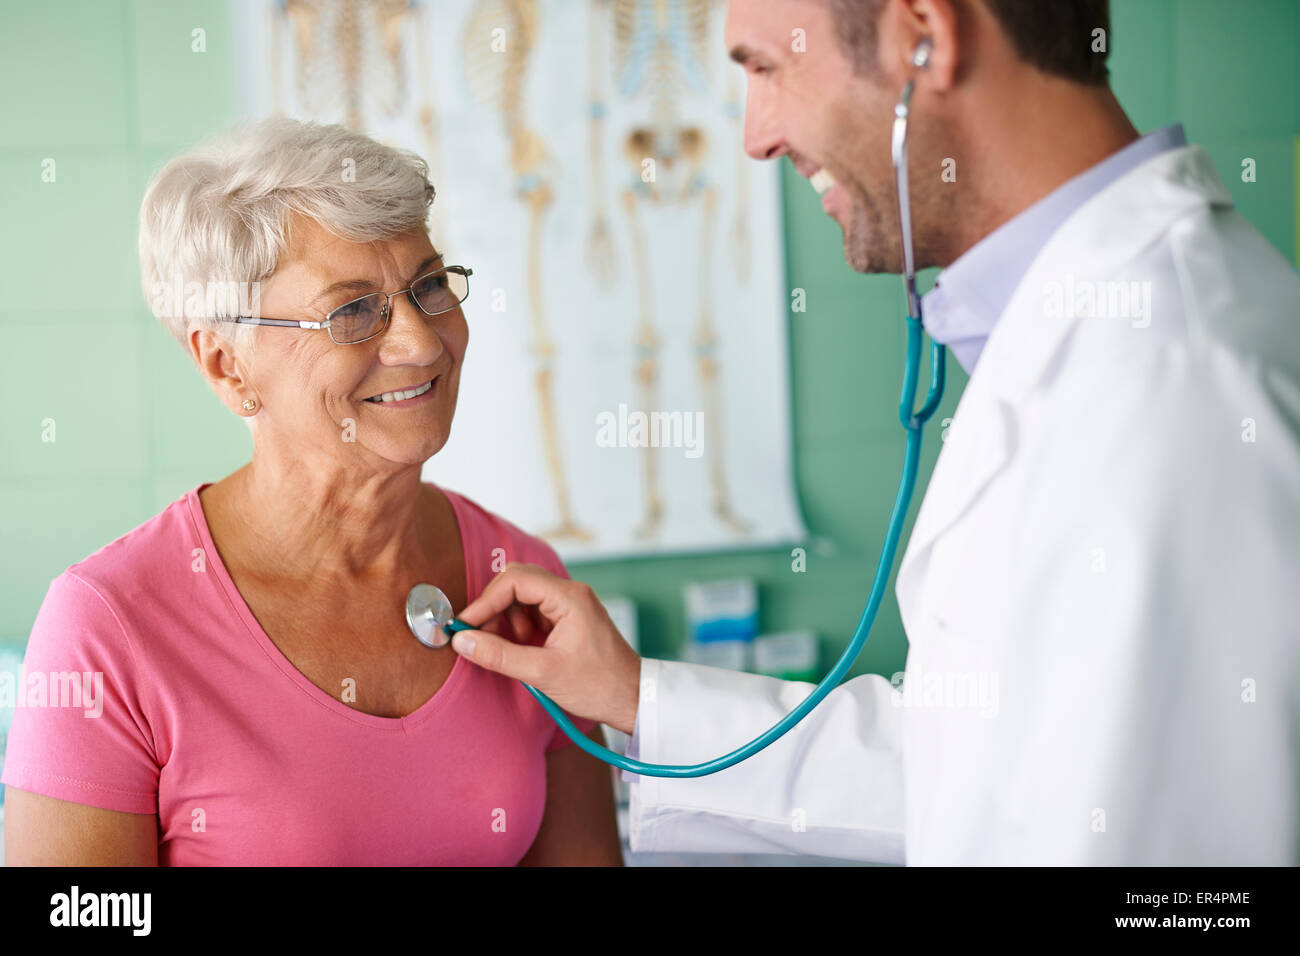 Visits in my doctor are no unpleasant. Debica, Poland - Stock Image